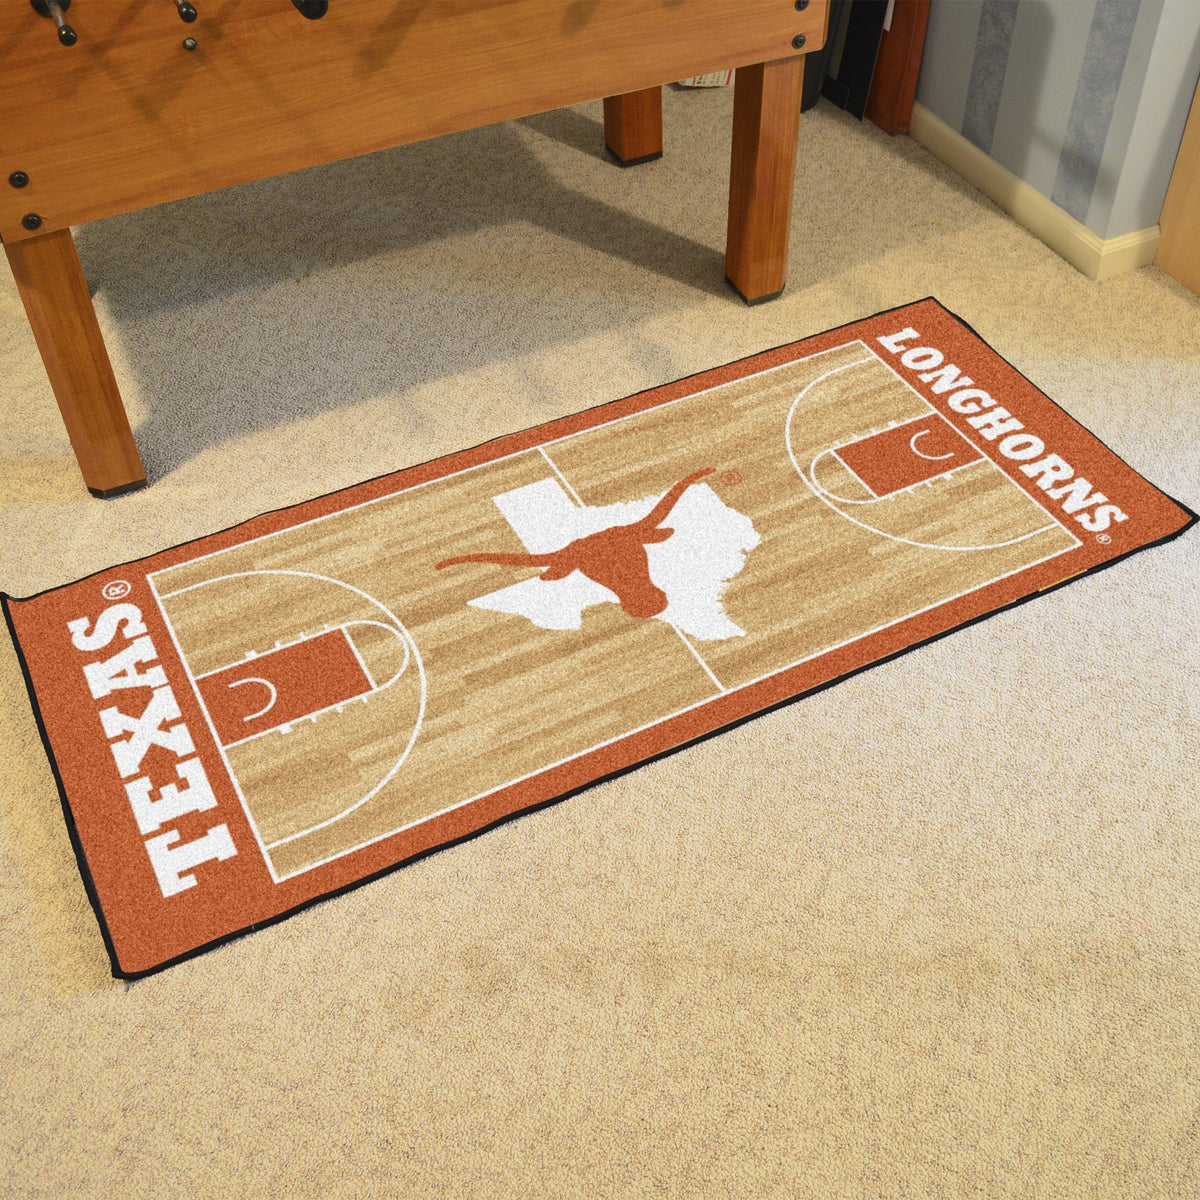 Collegiate - NCAA Basketball Runner Collegiate Mats, Rectangular Mats, NCAA Basketball Runner, Collegiate, Home Fan Mats Texas